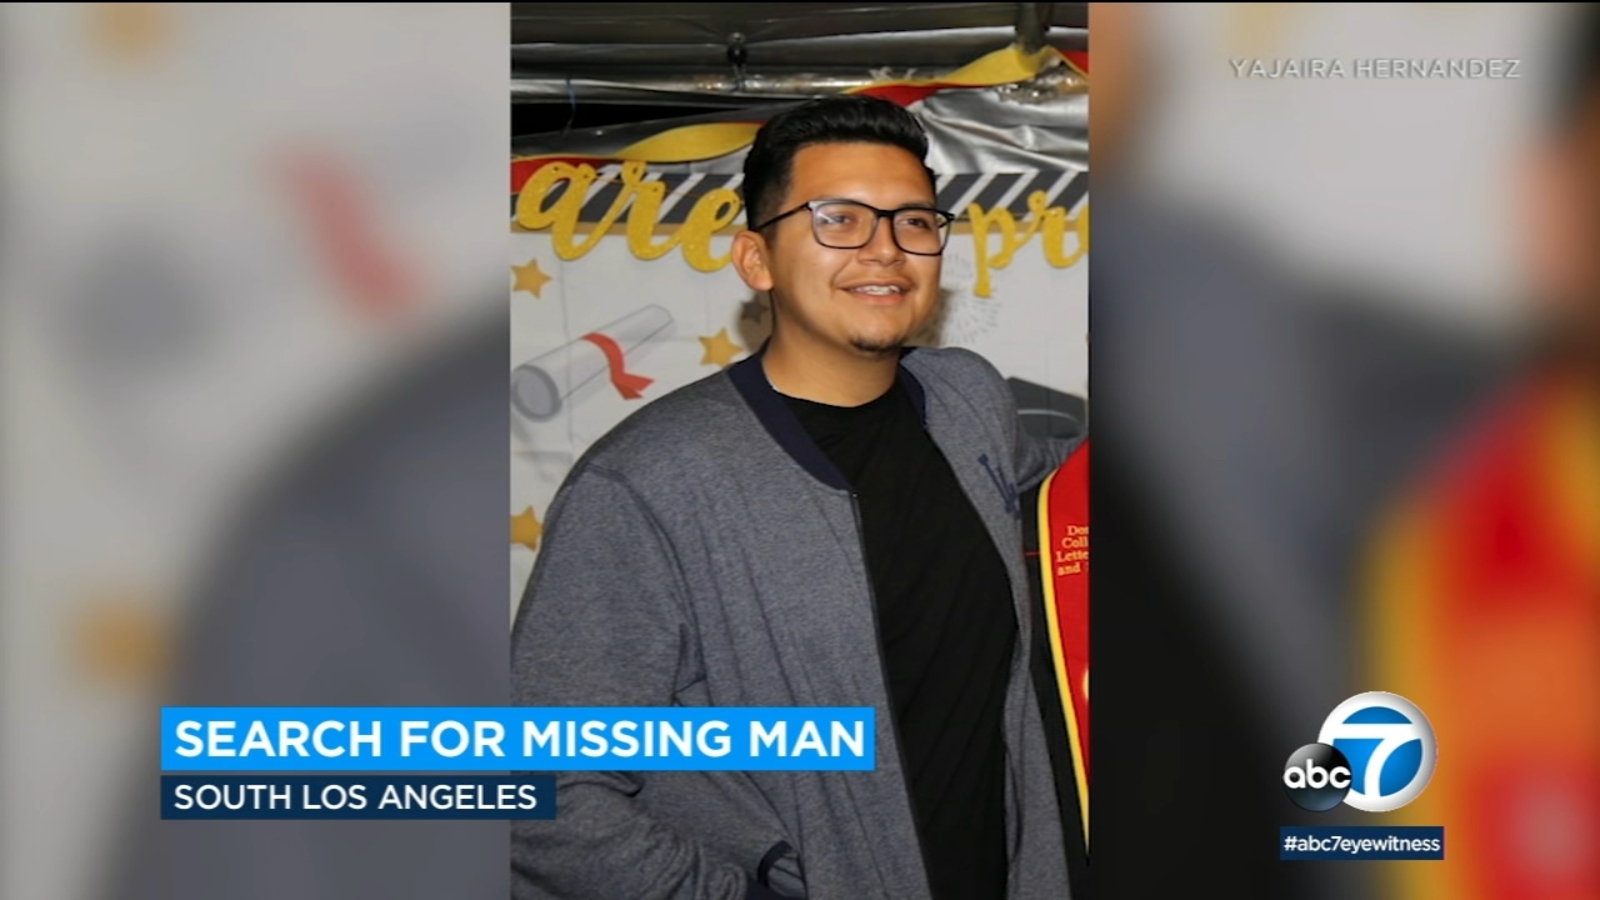 Family of missing South LA man desperate for answers after 21-year-old's car found running